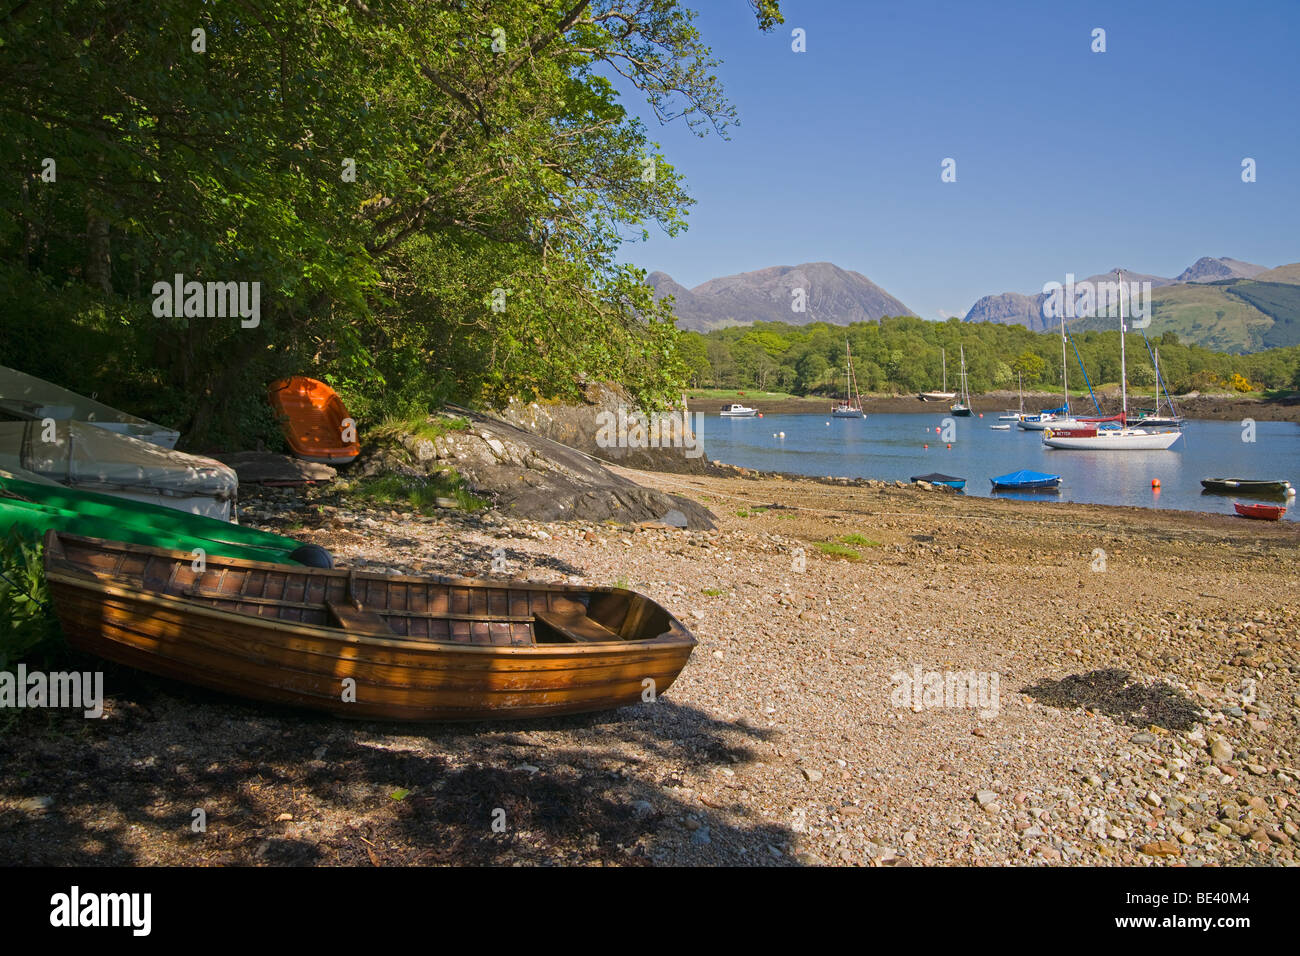 Loch Leven, Bishop's Bay, looking to Pap of Glencoe, North Ballachulish, Highland Region, Scotland, - Stock Image